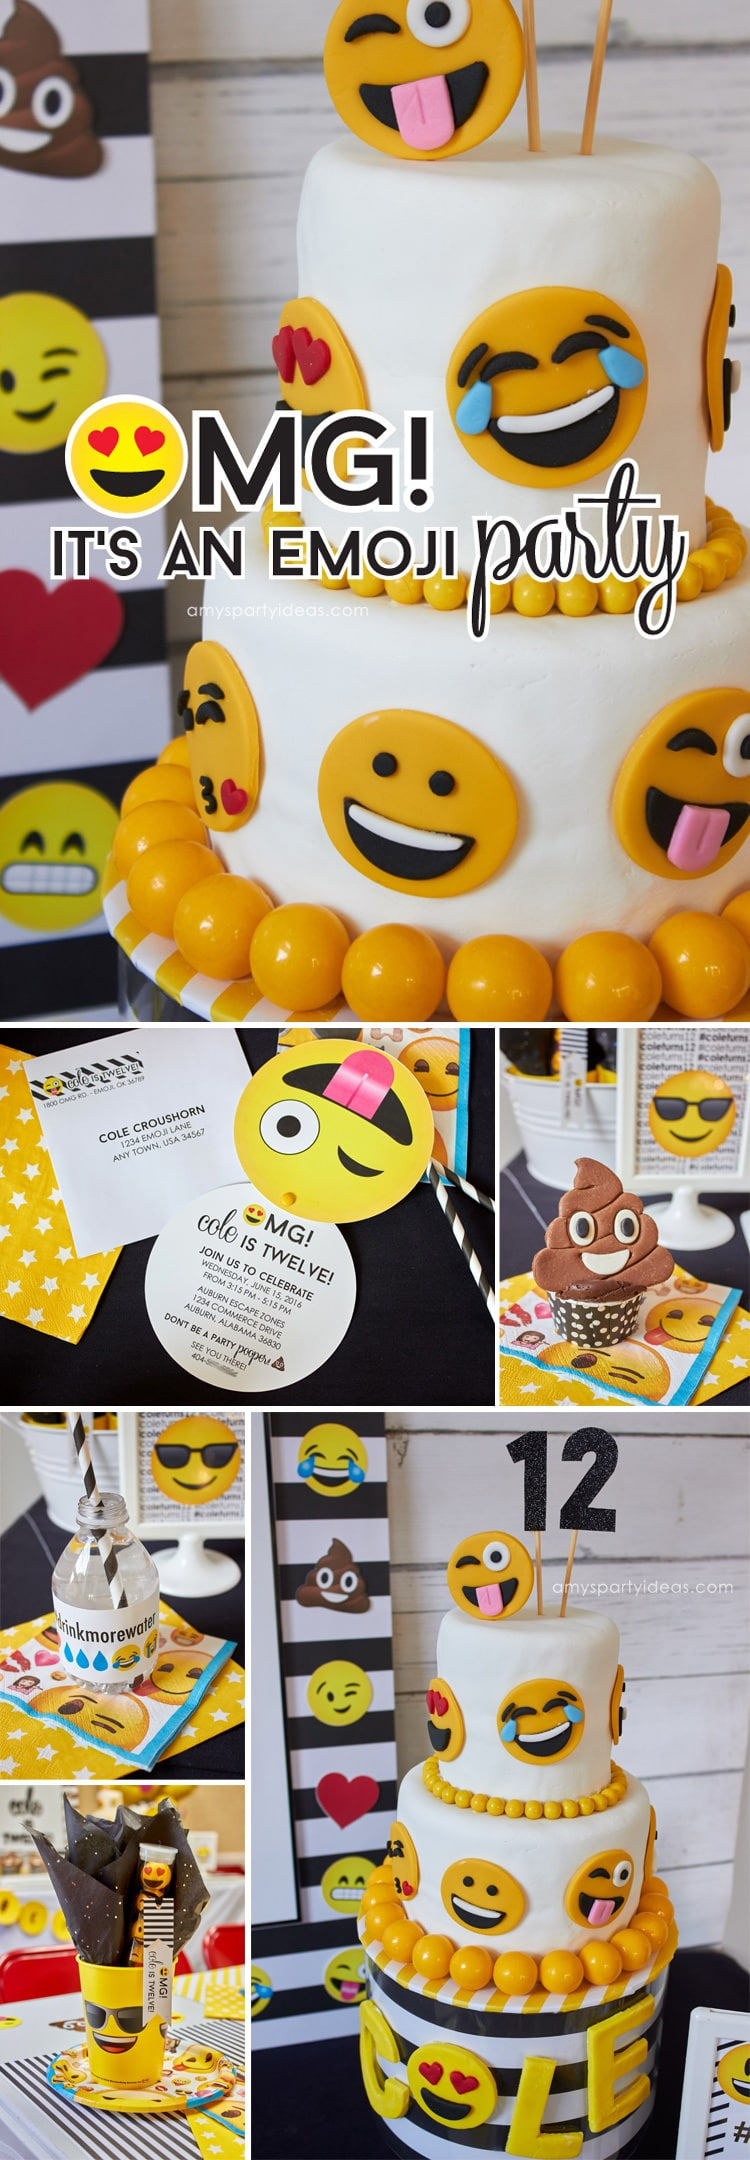 Emoji Party Ideas Printables As Seen On AmysPartyIdeas